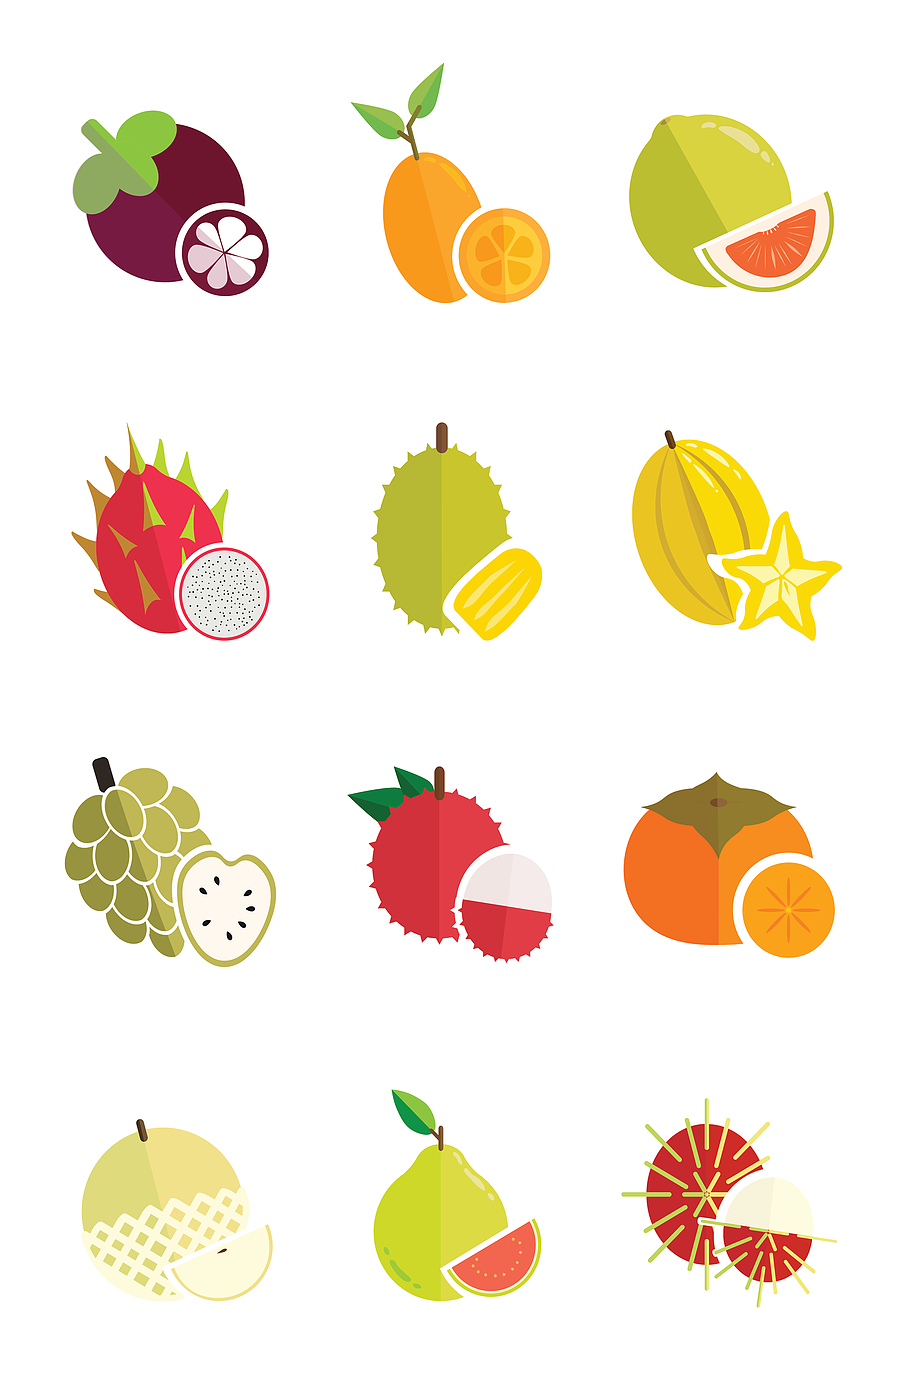 Fruit Icons (Adobe Illustrator, 2019)